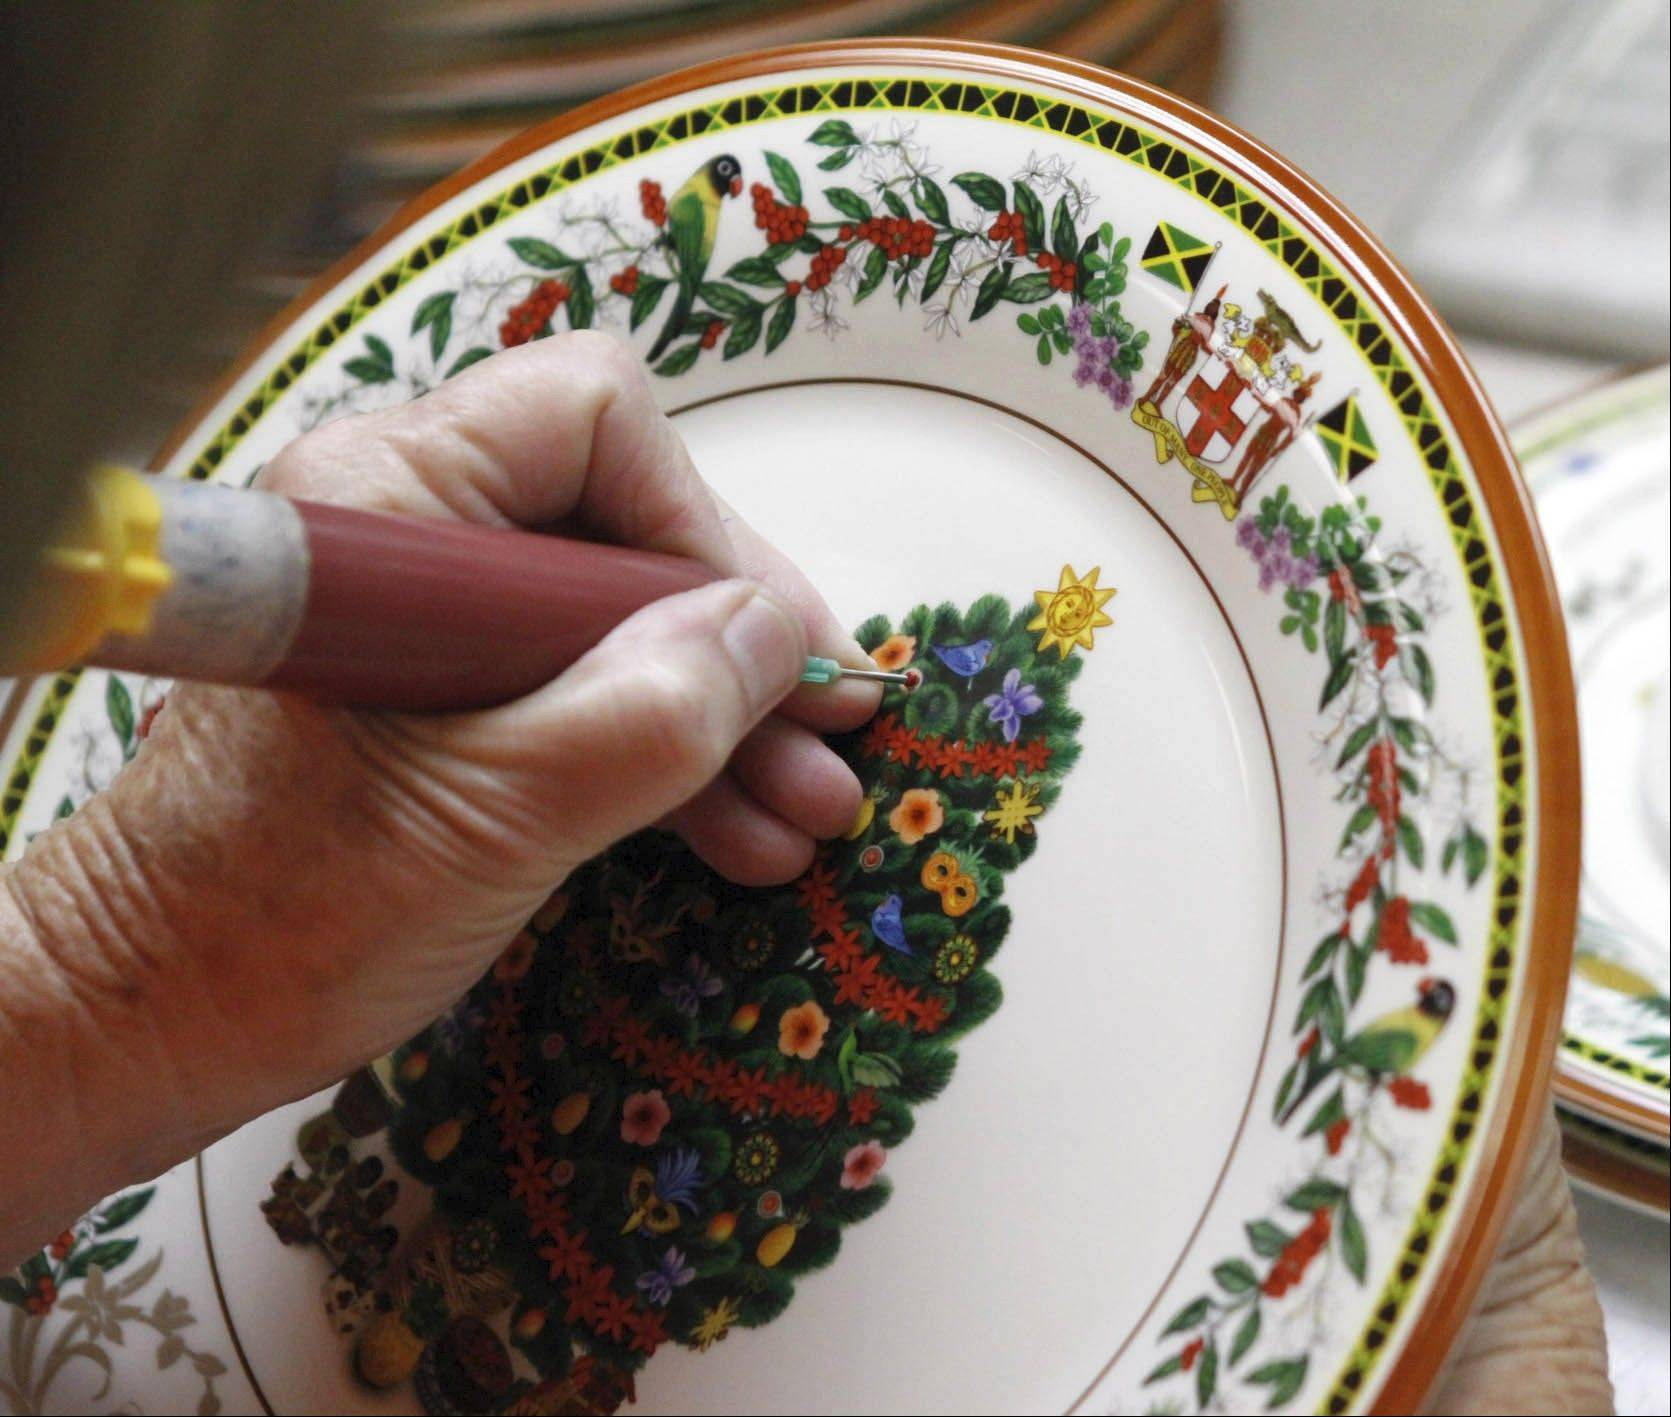 A painter adds color in extreme detail to a seasonal dish at the Lenox china factory in Kinston, N.C.